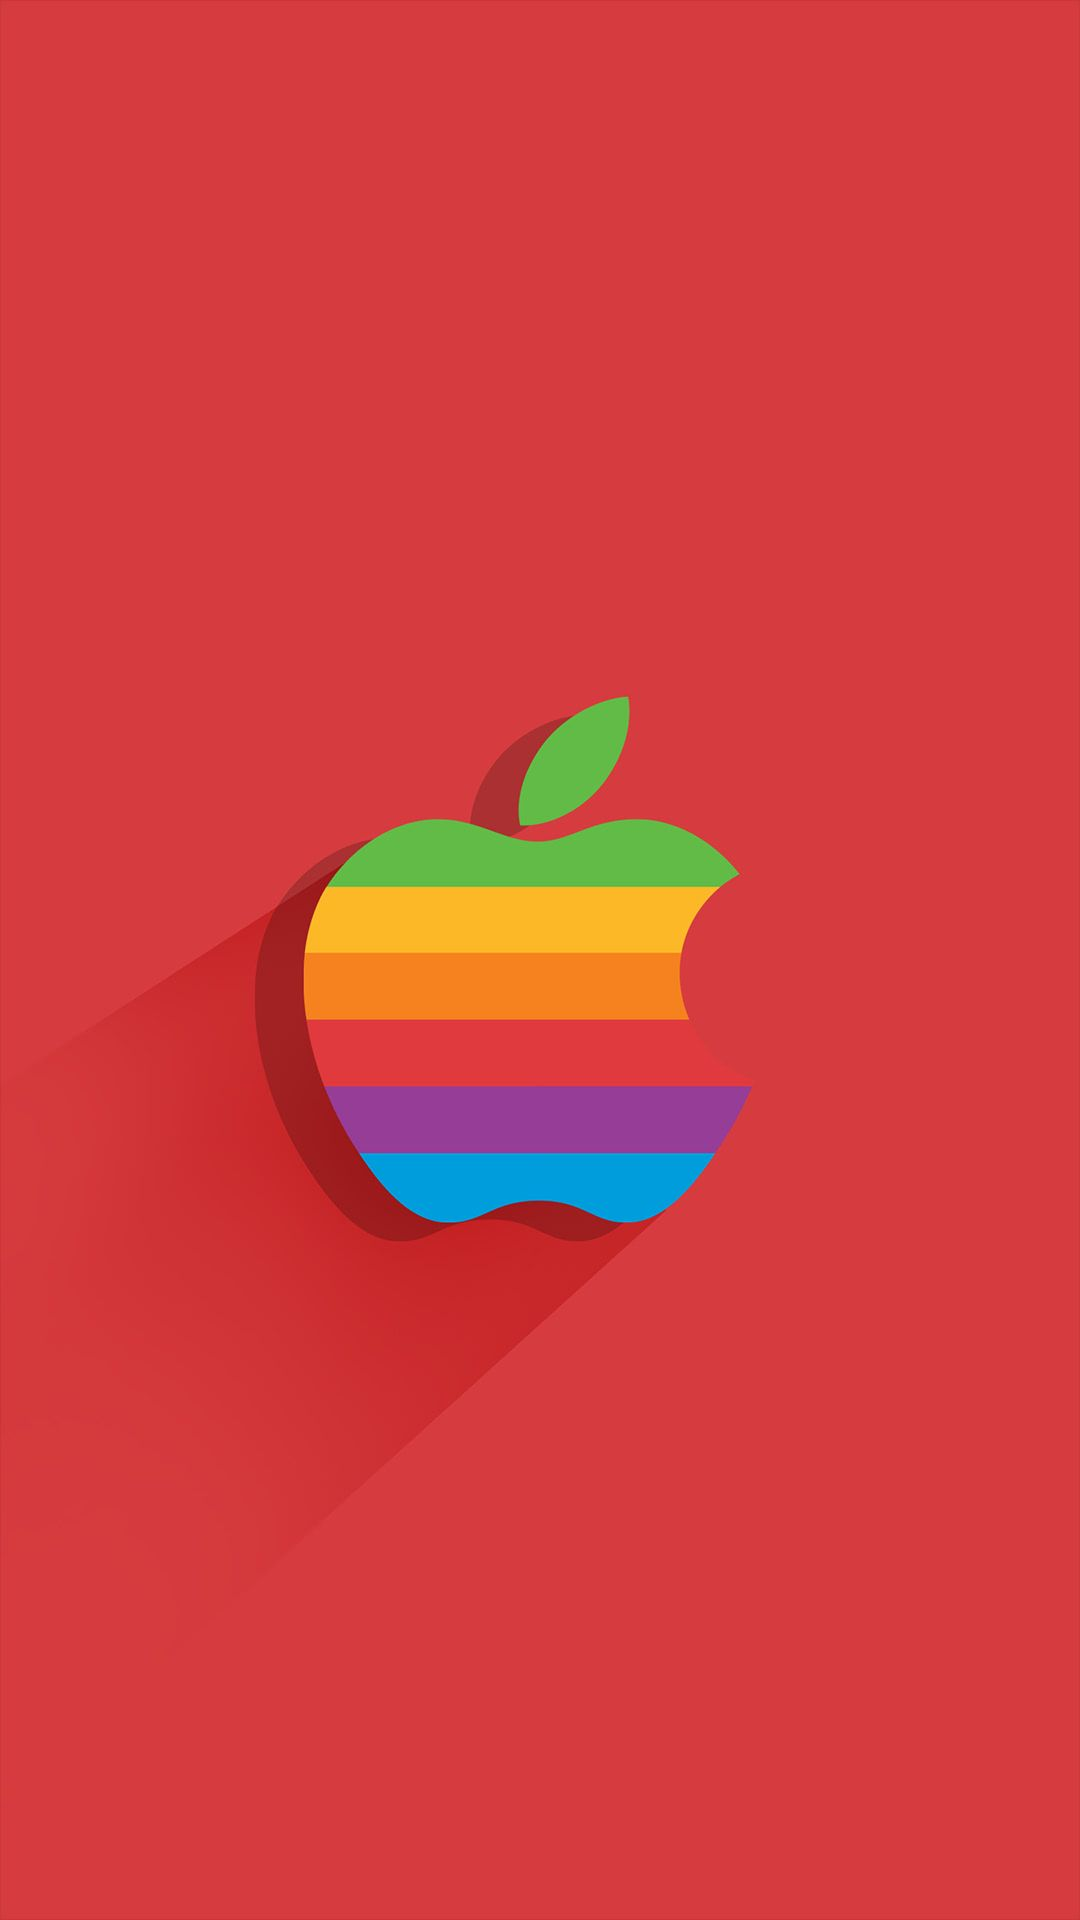 Apple Rainbow Logo Apple Logo Wallpaper Iphone Apple Logo Wallpaper Apple Wallpaper